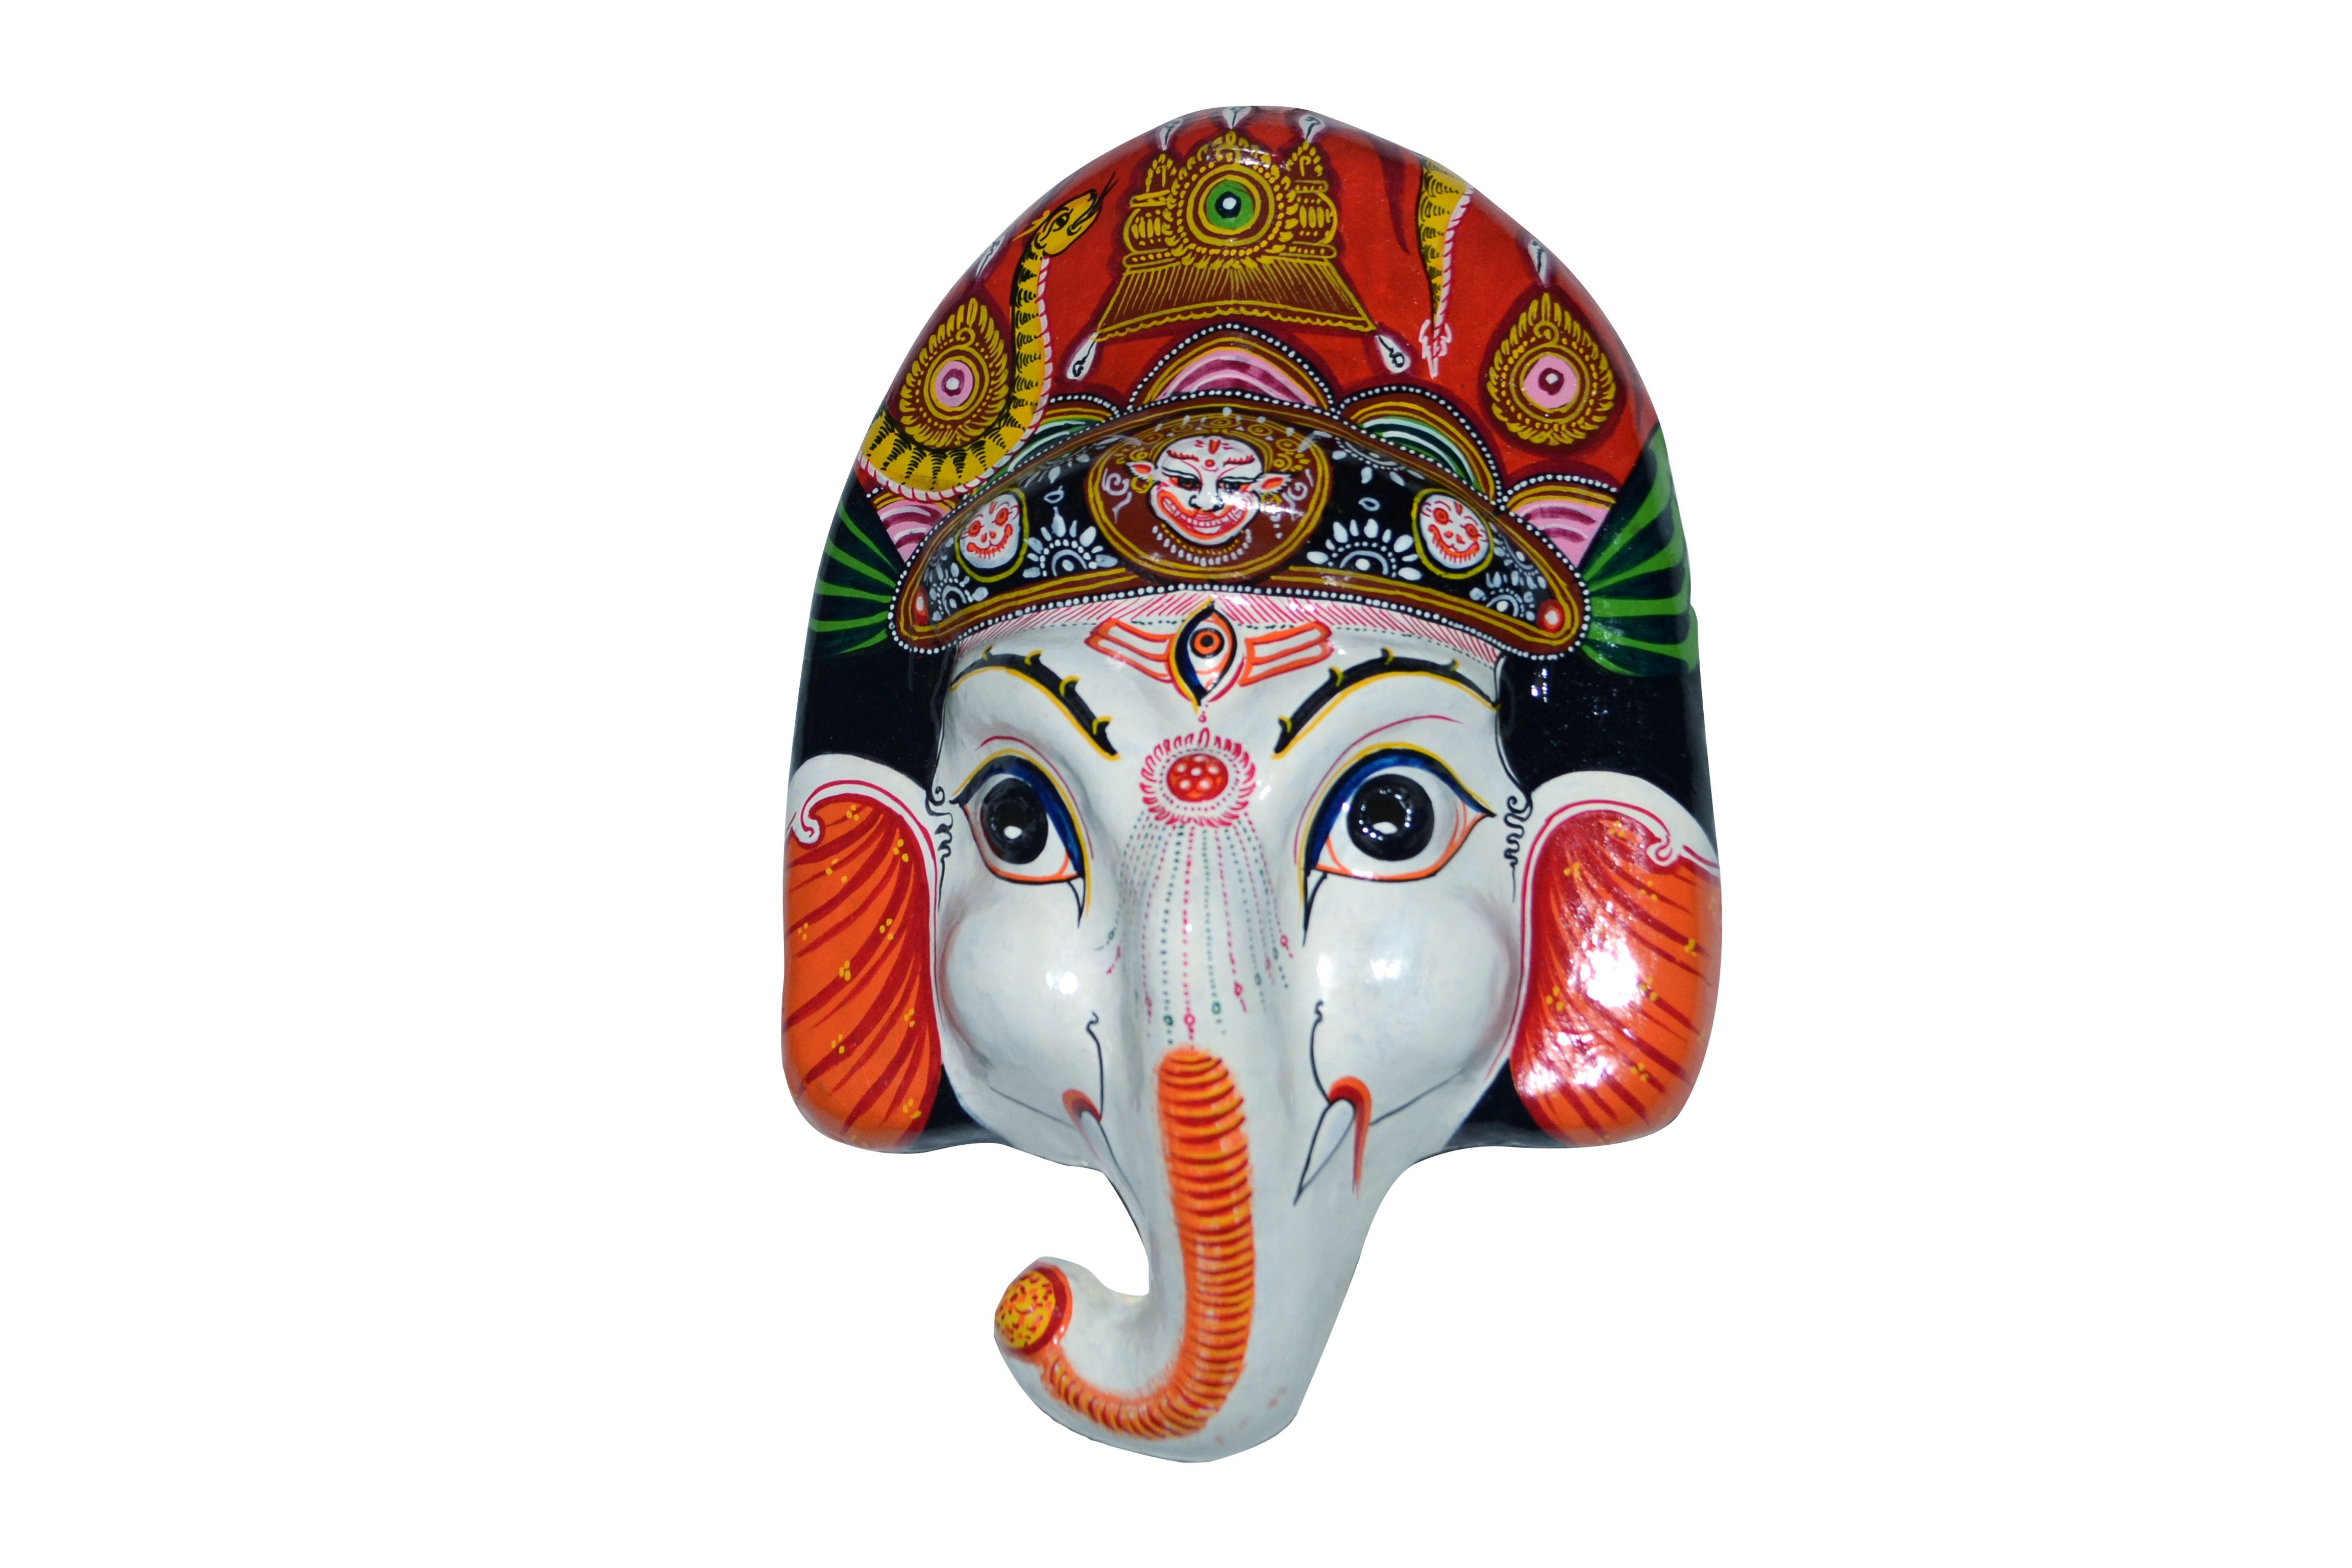 This Is A Brand New Hand Painted Mask Of Lord Ganesh Son Of Shiva